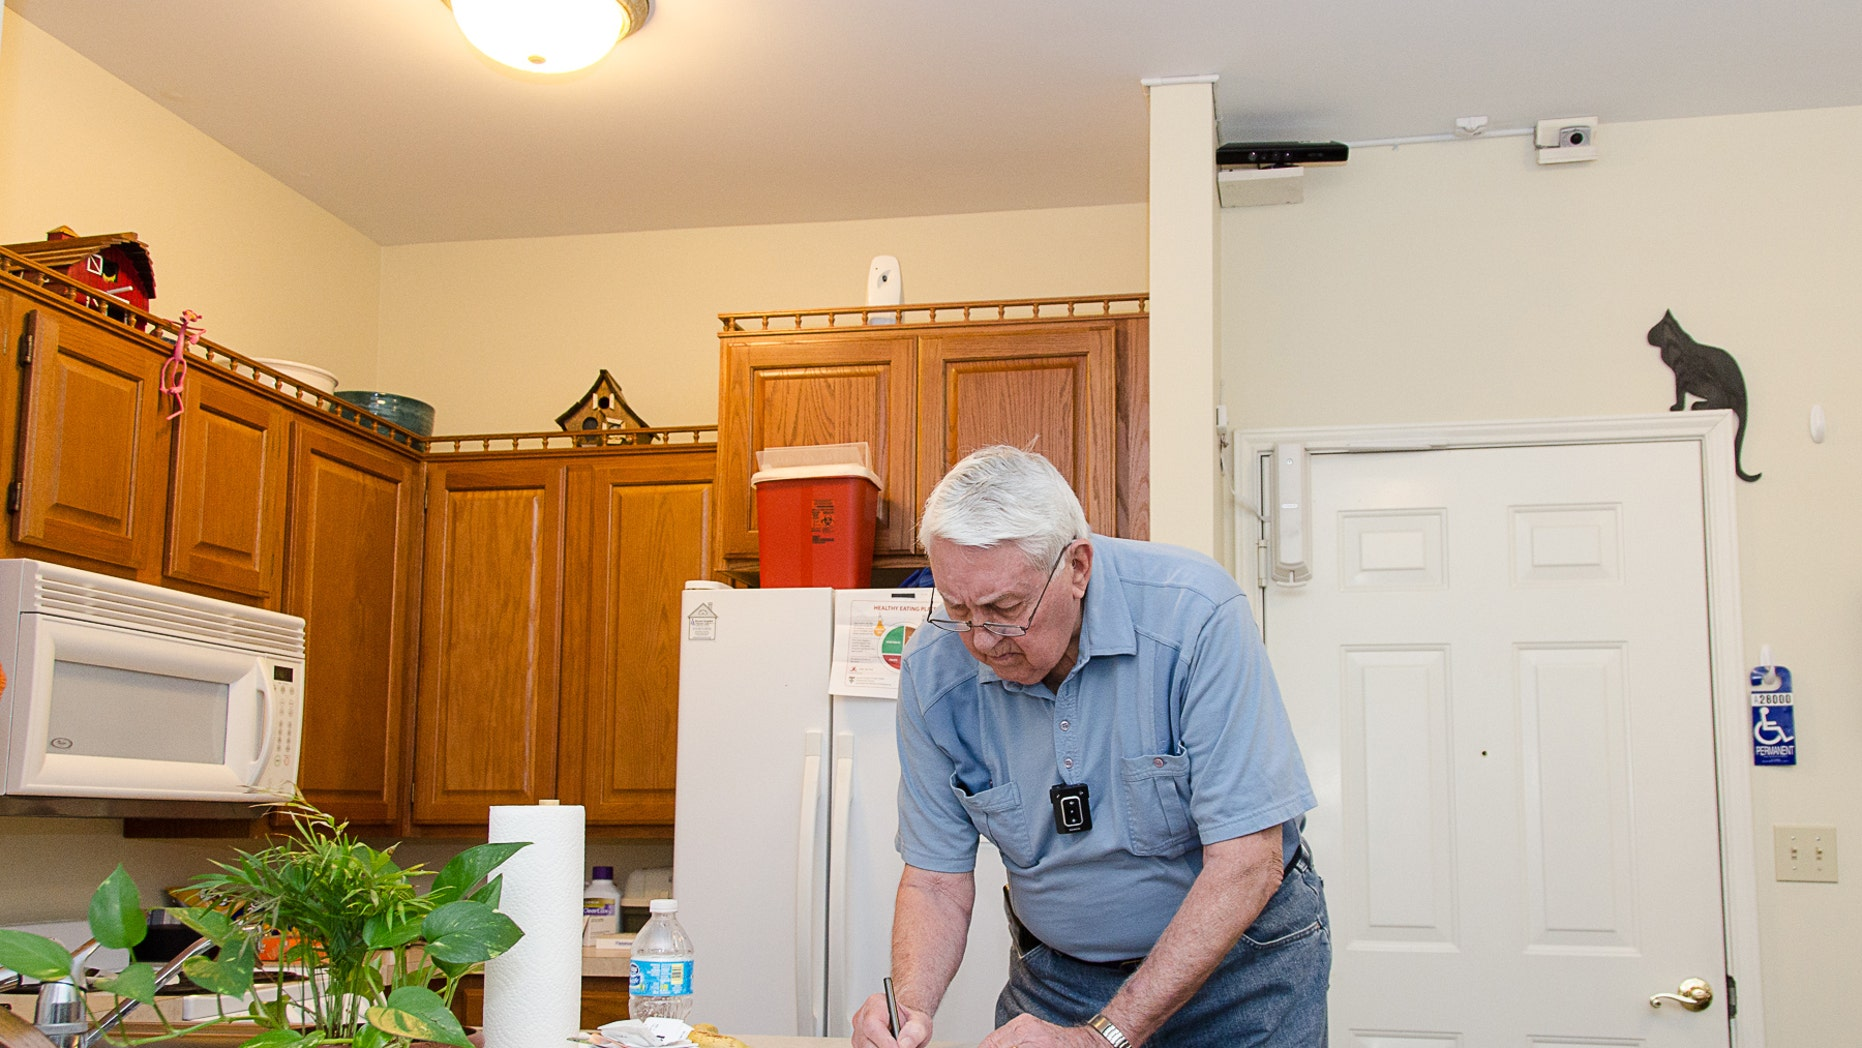 Bob Harrison writes in his TigerPlace apartment in Columbia, Mo., as different sensors mounted near the ceiling record activity patterns. The sensor technology is unobtrusive and does not interfere with his everyday tasks.